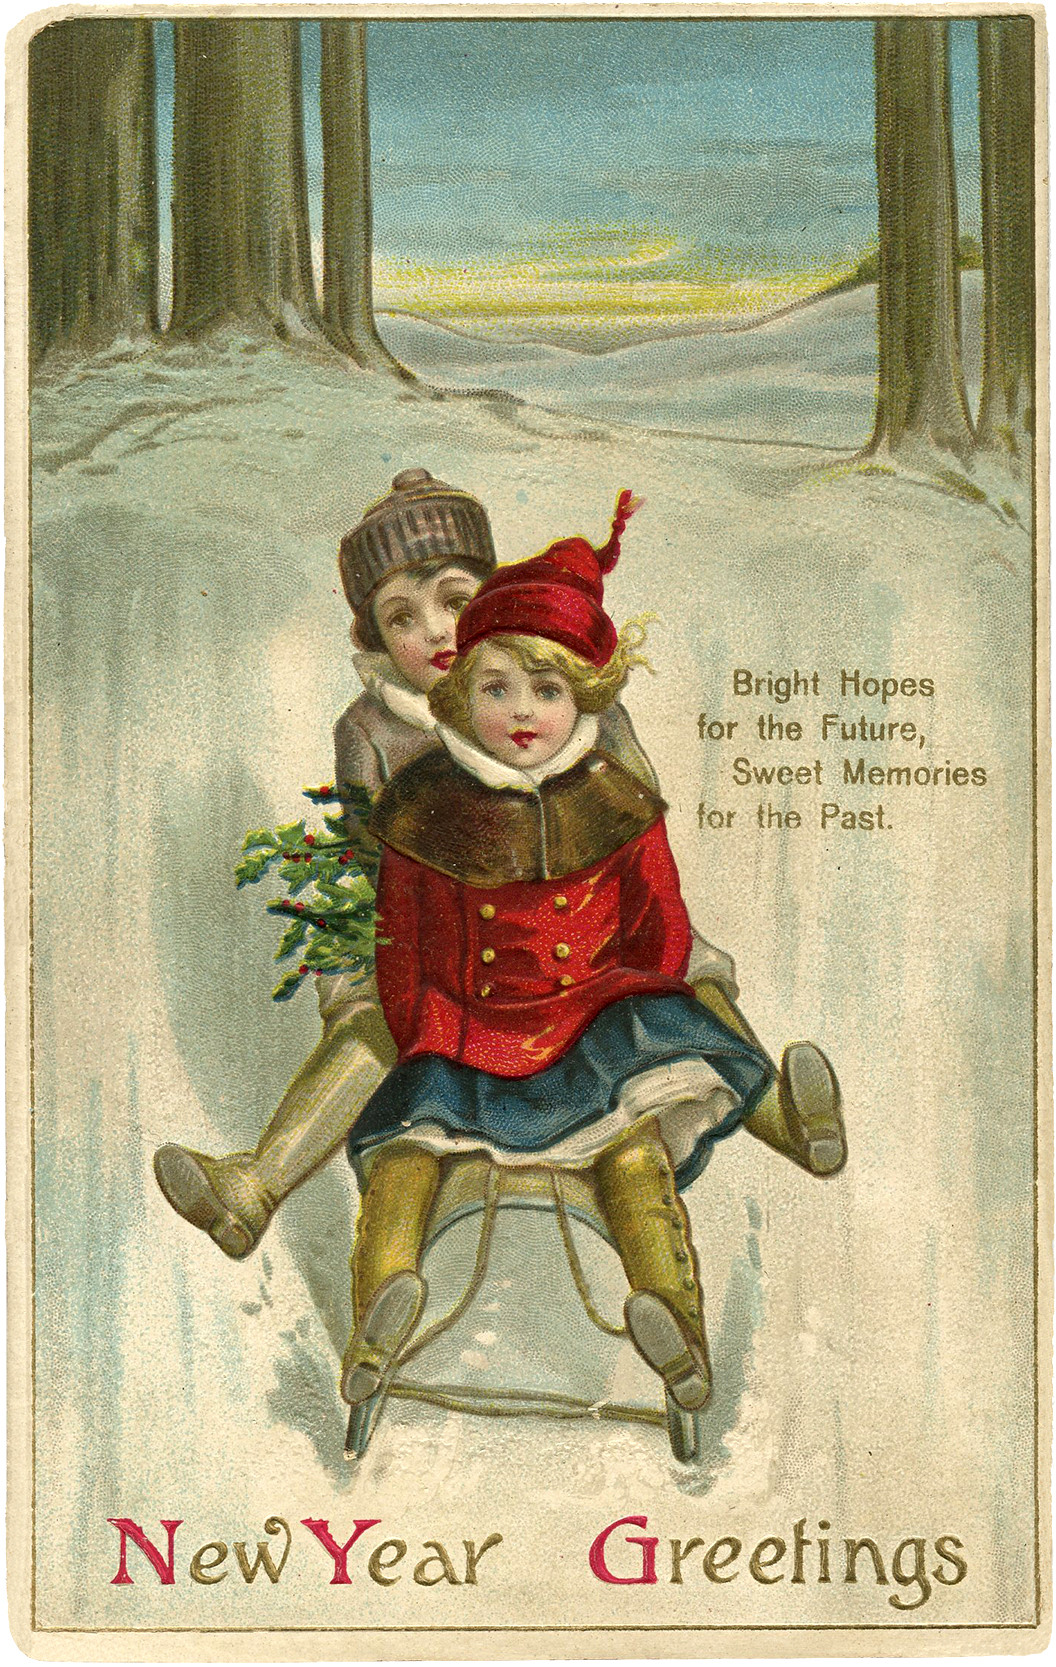 Vintage New Year Sled Image   Cute    The Graphics Fairy Vintage New Year Sled Image